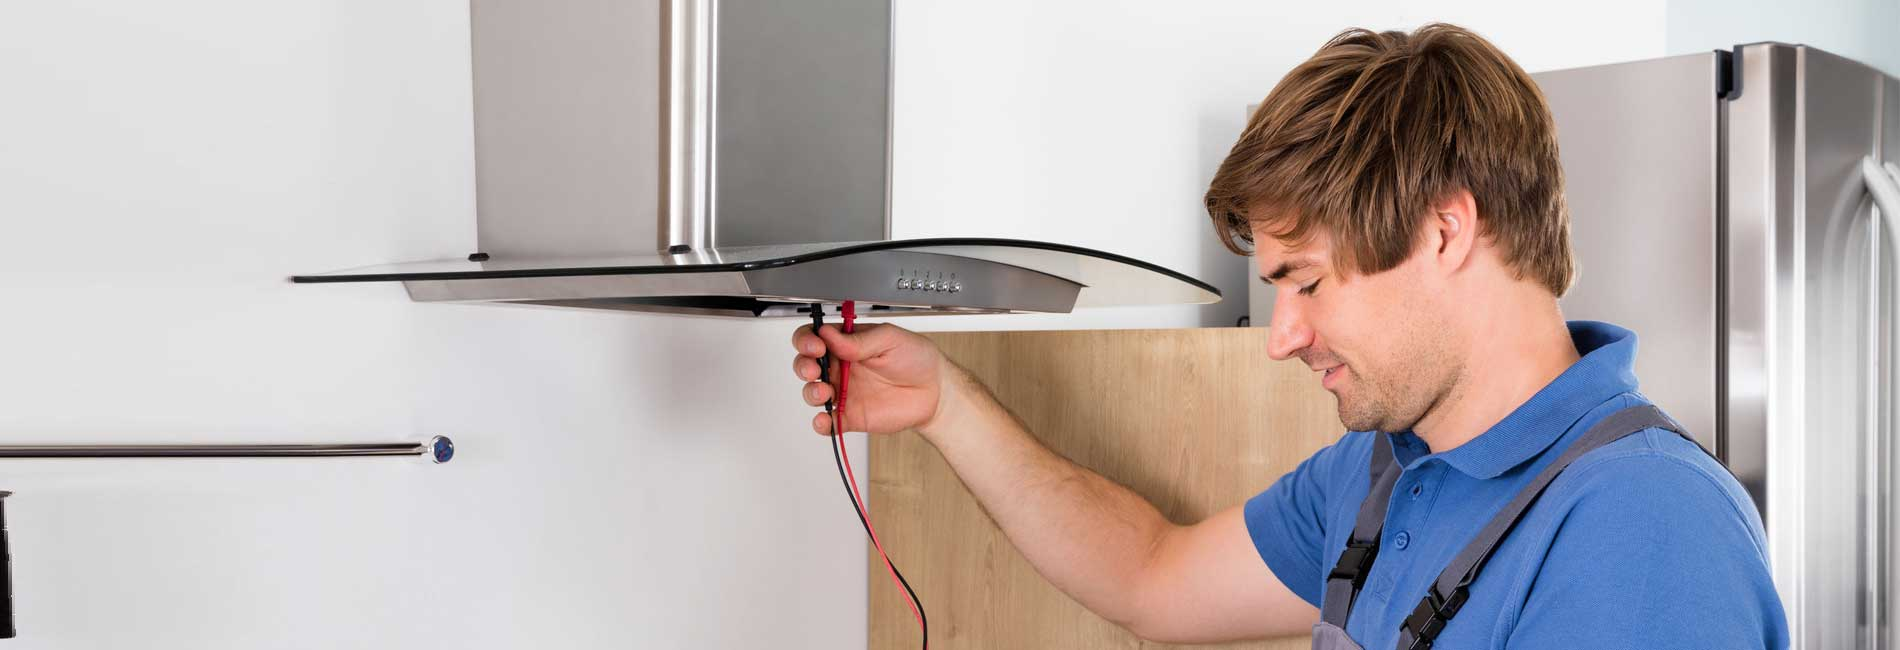 Hindware Chimney Service in Vallalar Nagar